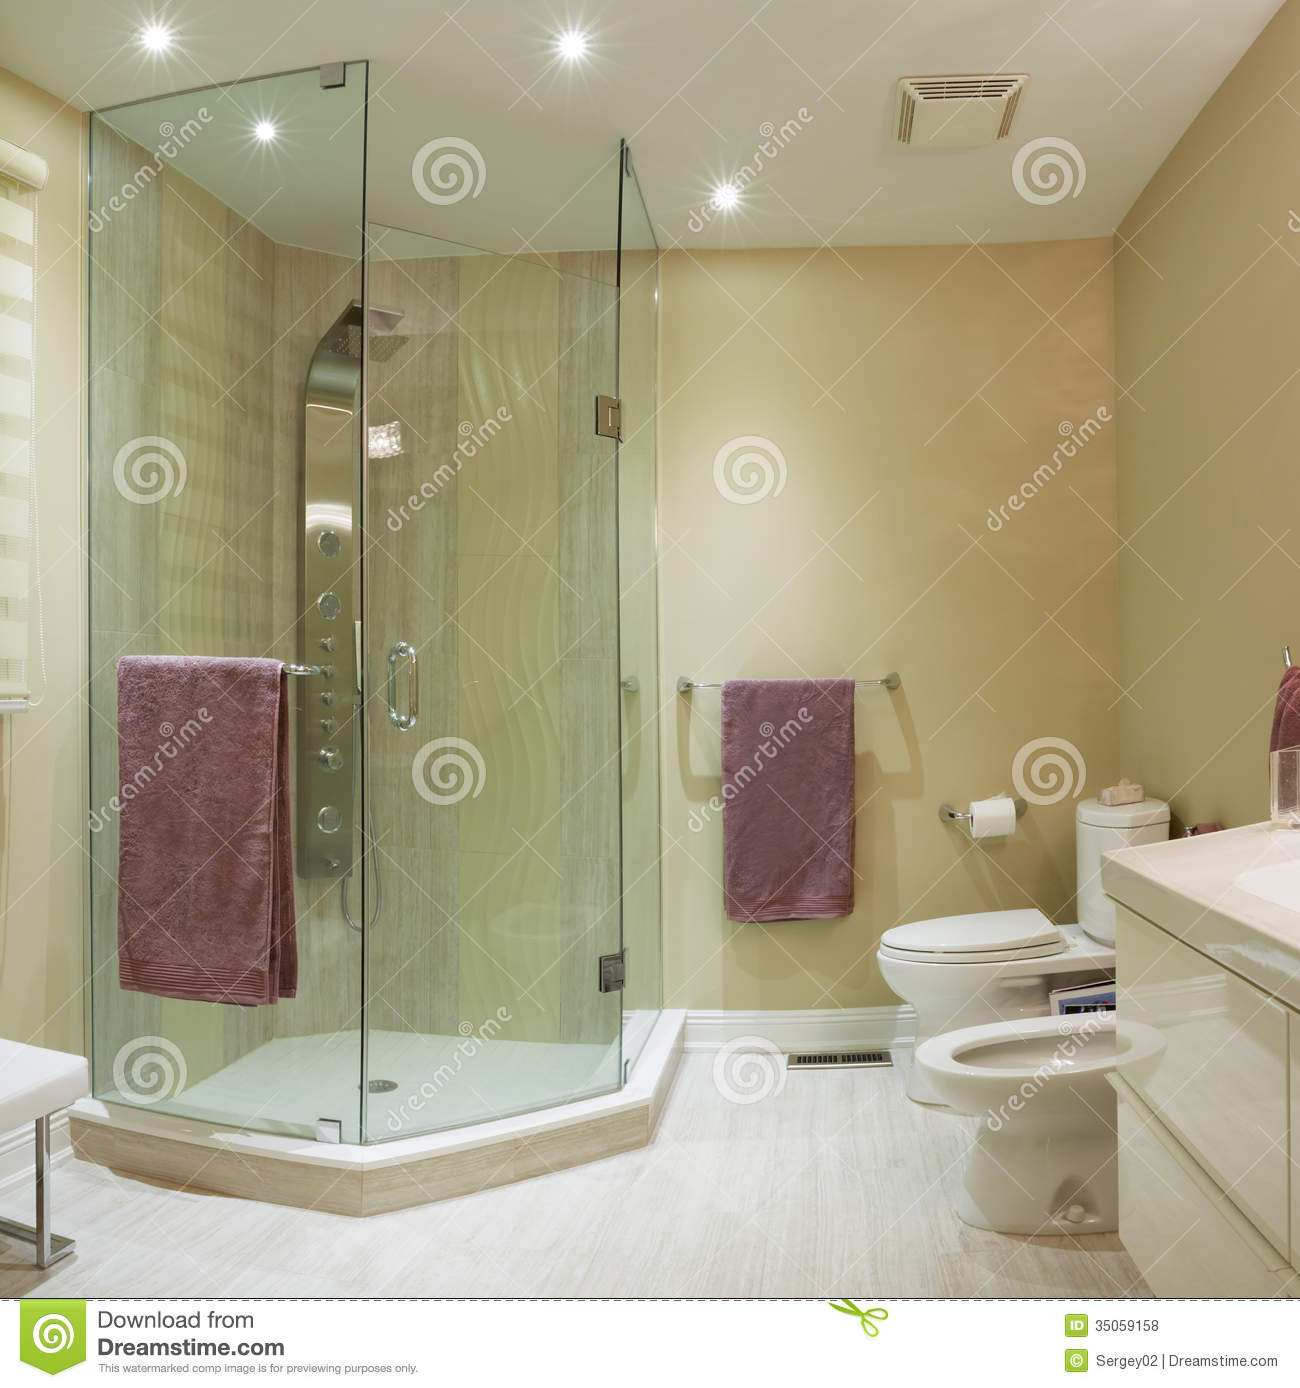 Interior design royalty free stock photos image 35059158 New design in bathroom